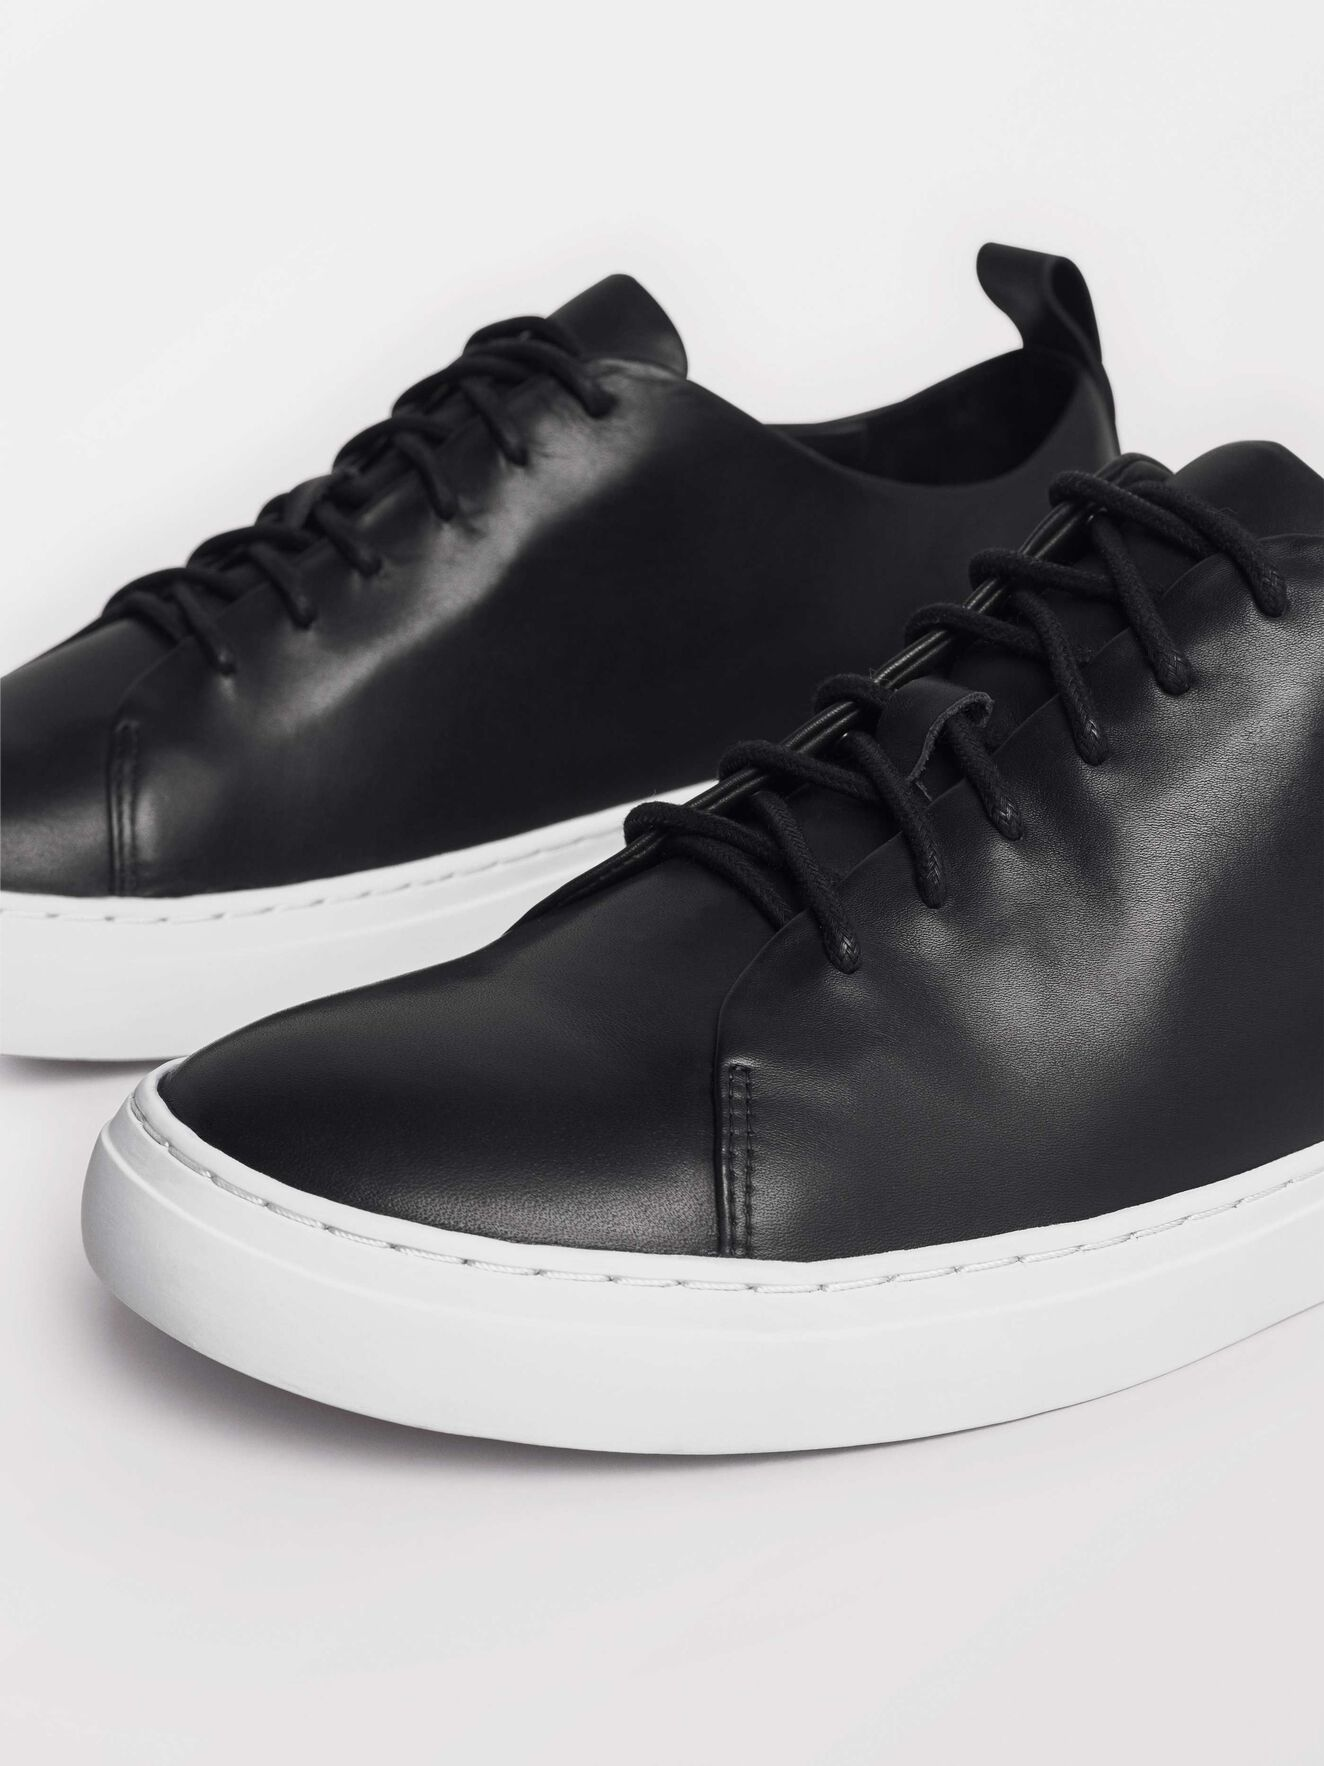 Brukare Sneakers in Black from Tiger of Sweden